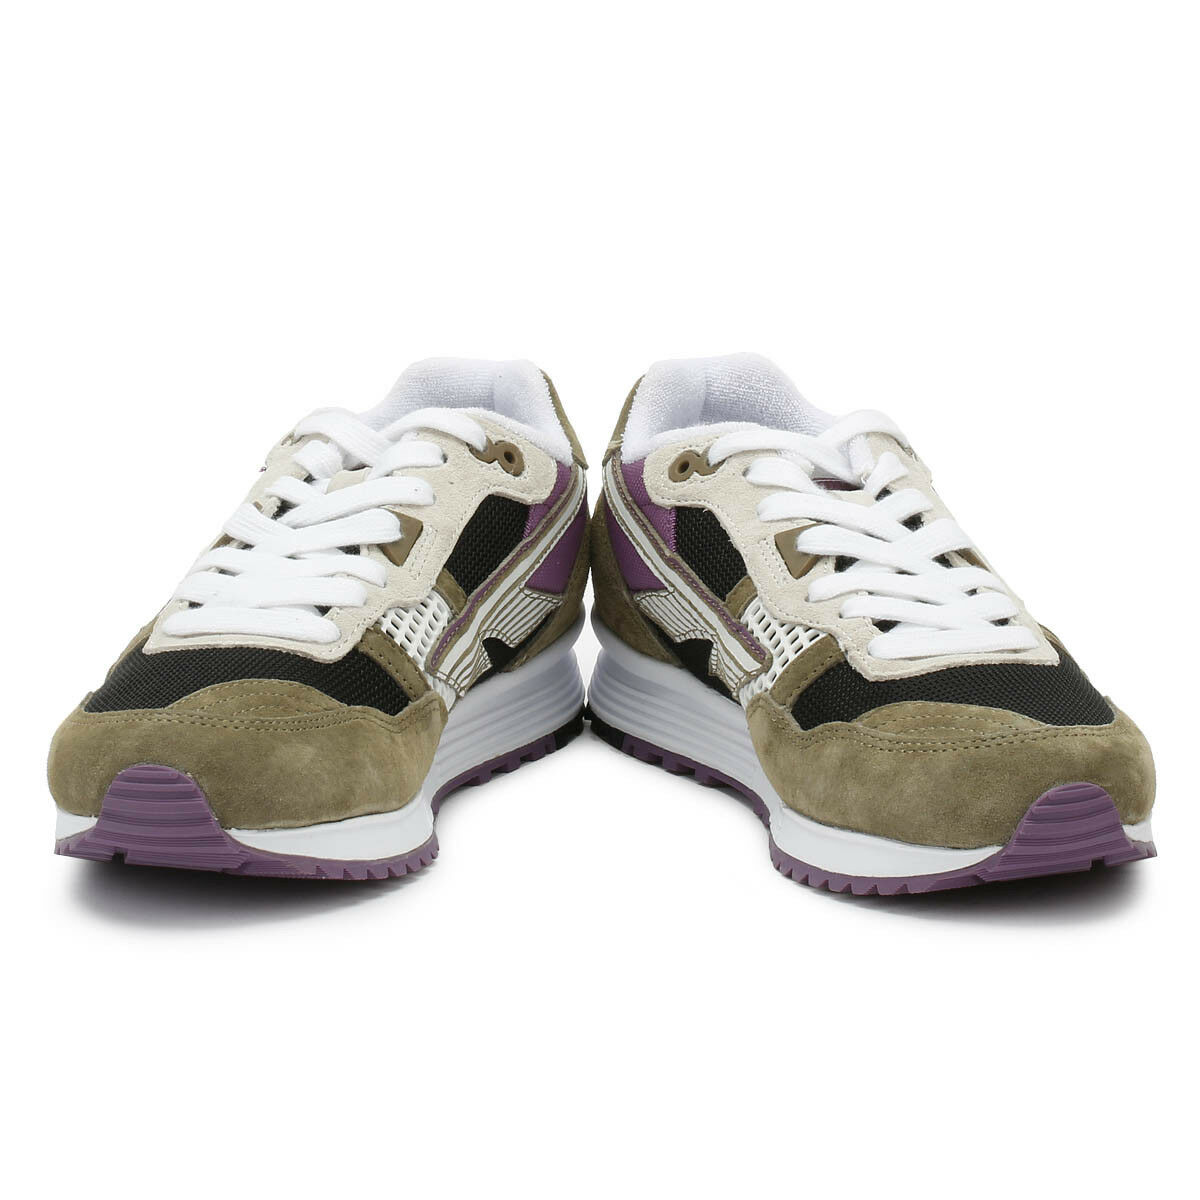 Hi-Tec Hi-Tec Hi-Tec Unisex Trainers Badwater 146 Tan & Black Sport Casual Lace Up shoes 867538